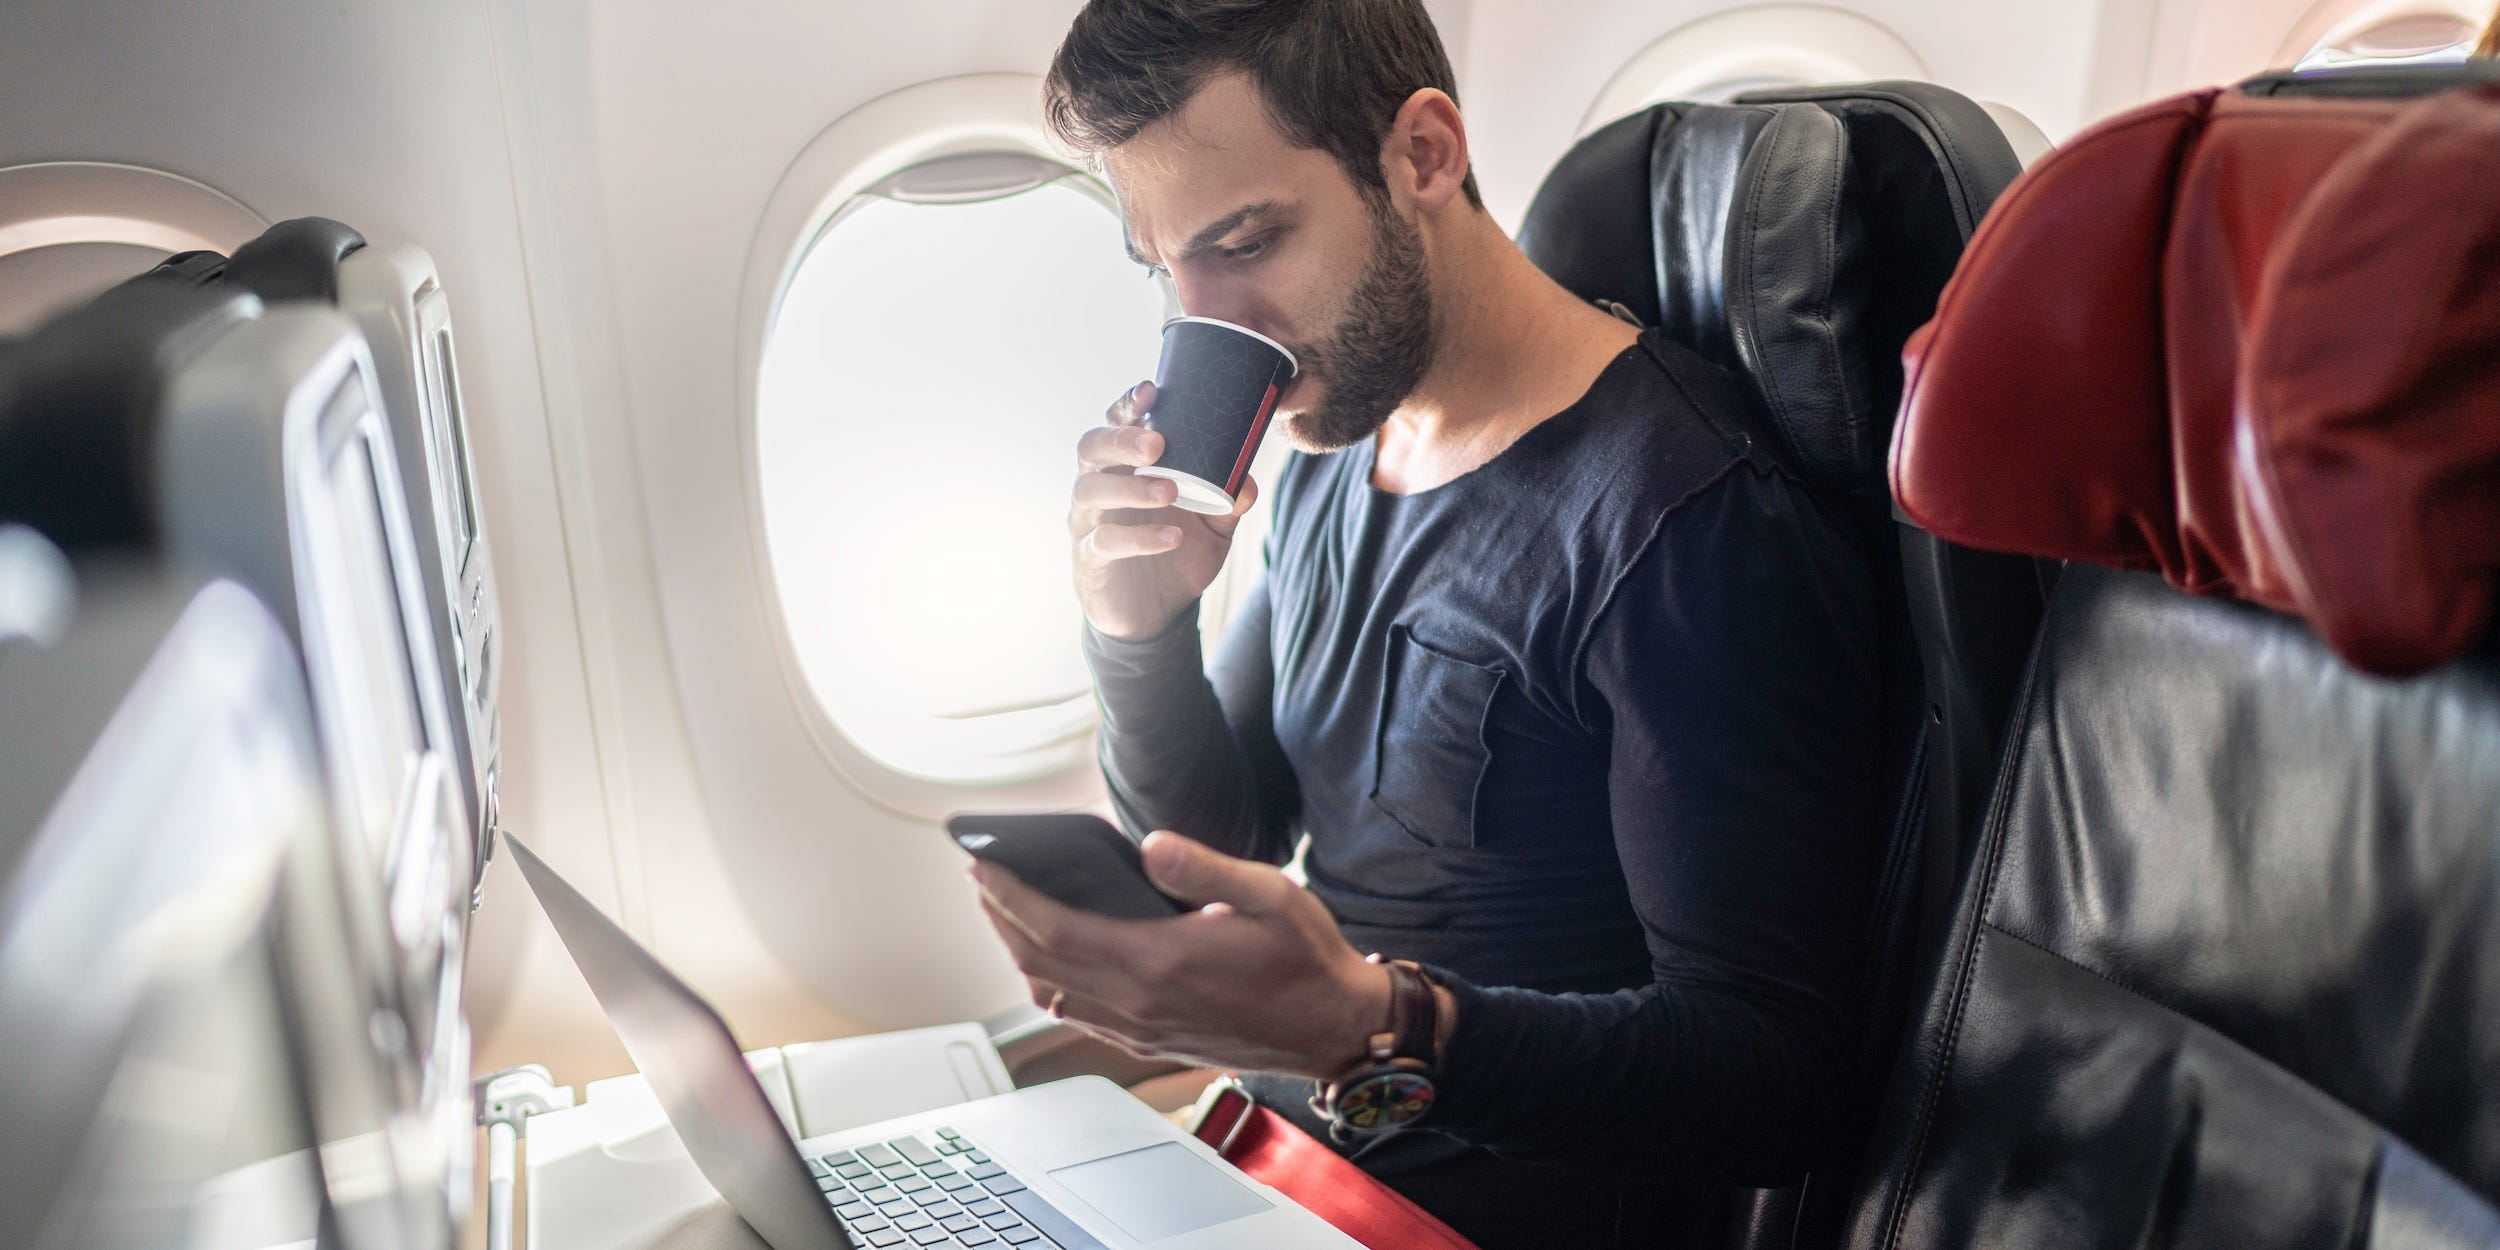 Best Laptop for Airline Use